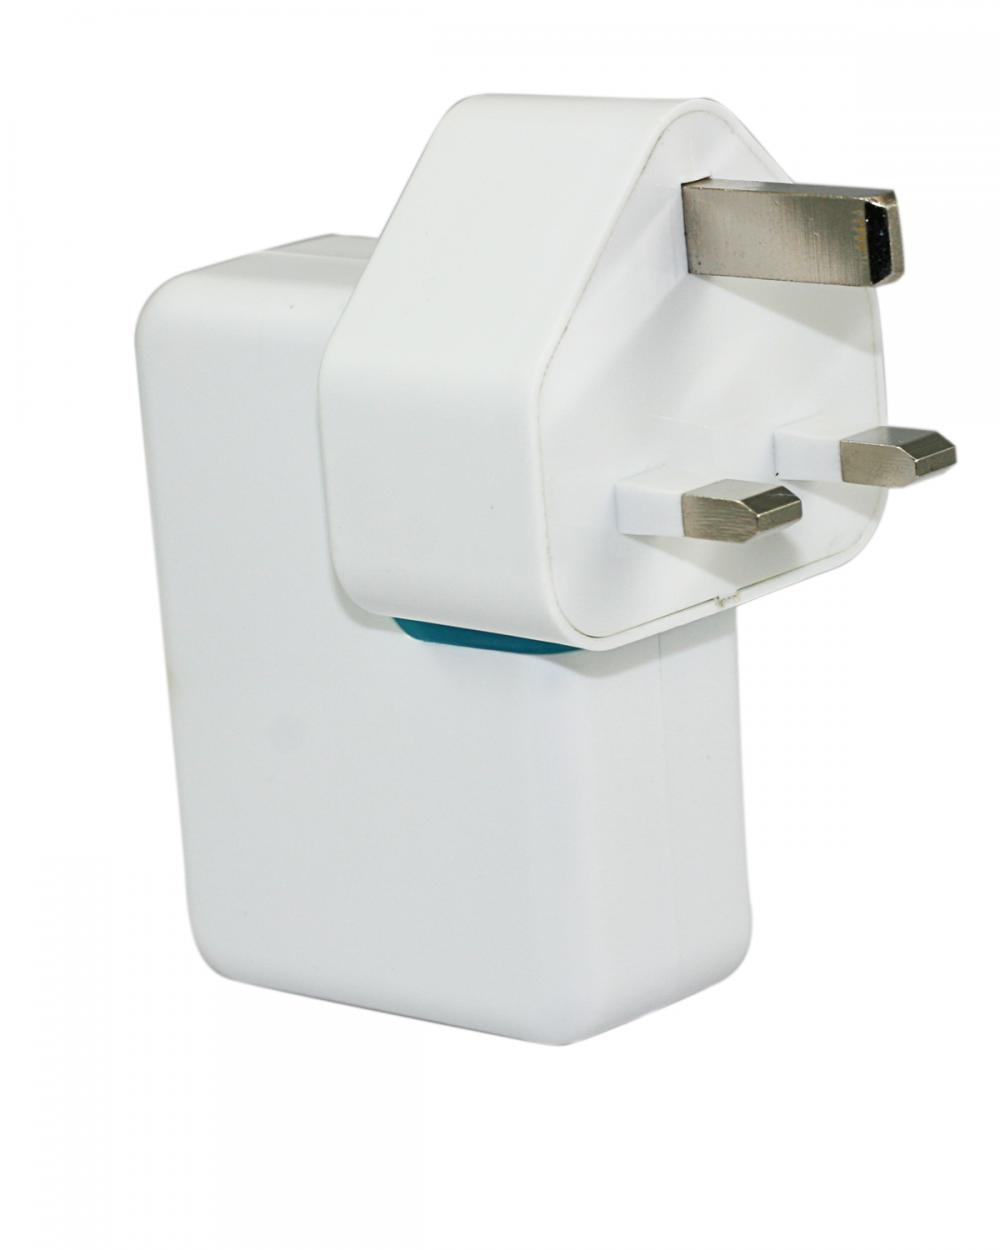 USB Charger UK plug